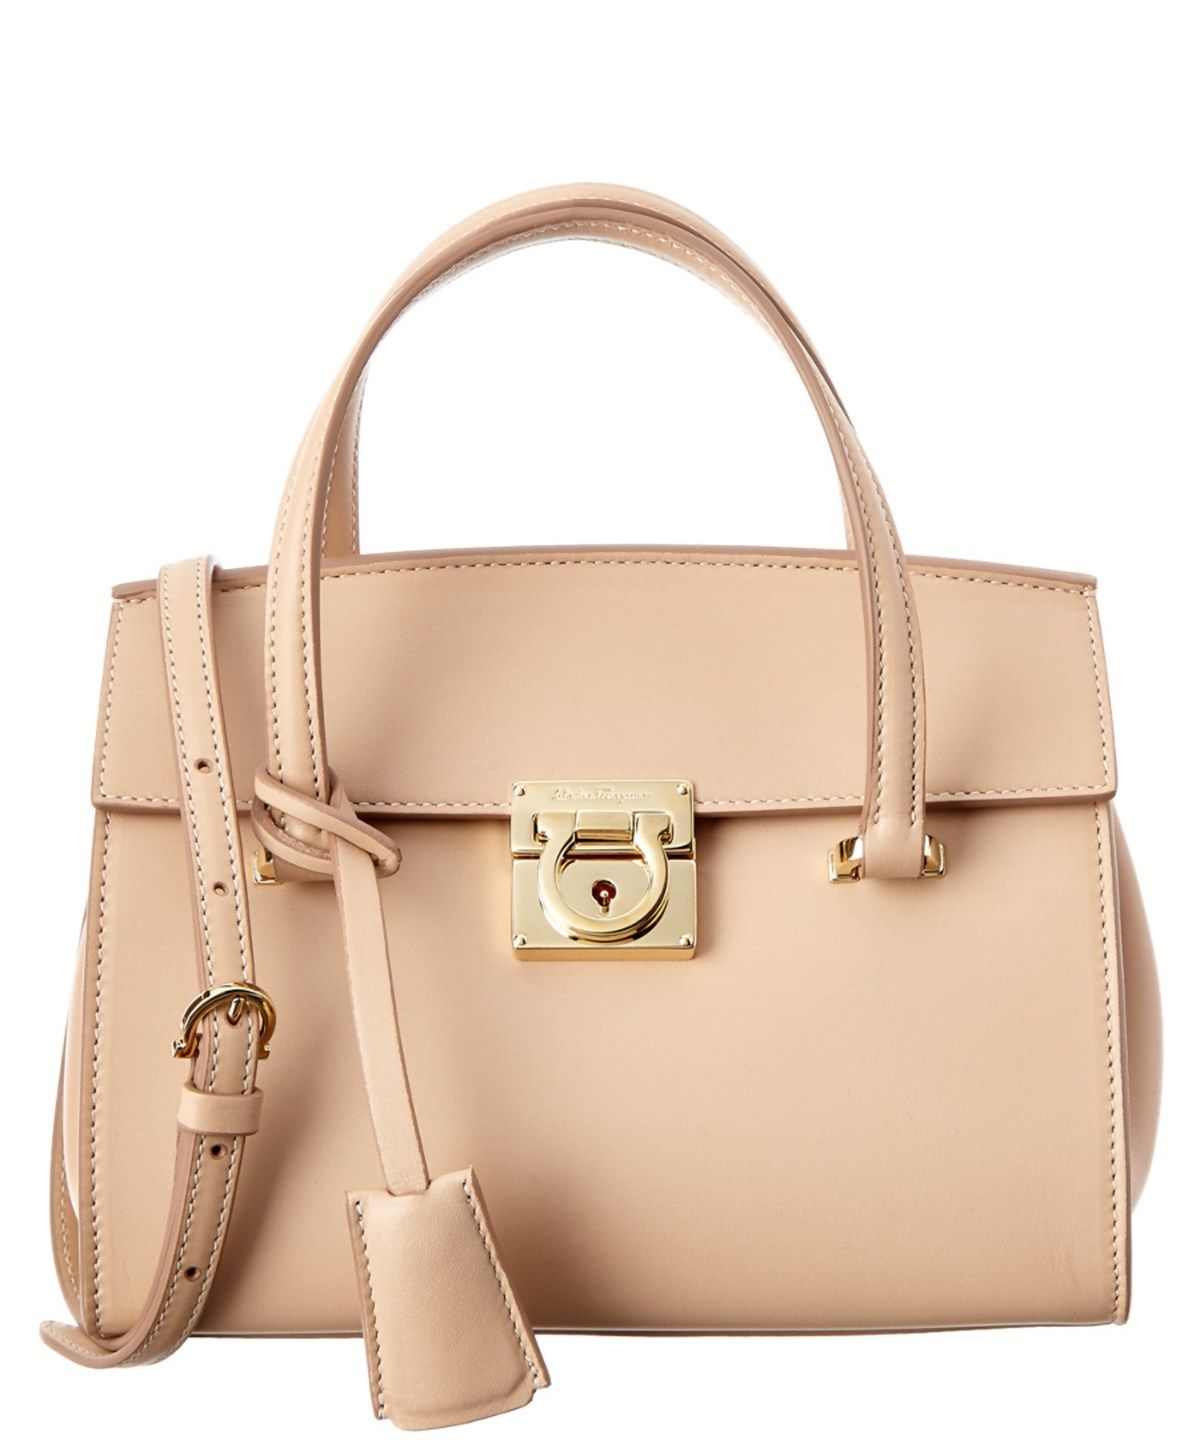 d861e0839868 SALVATORE FERRAGAMO SALVATORE FERRAGAMO MARA GANCIO LOCK SMALL LEATHER  TOTE .  salvatoreferragamo  bags  shoulder bags  hand bags  leather  tote   lining